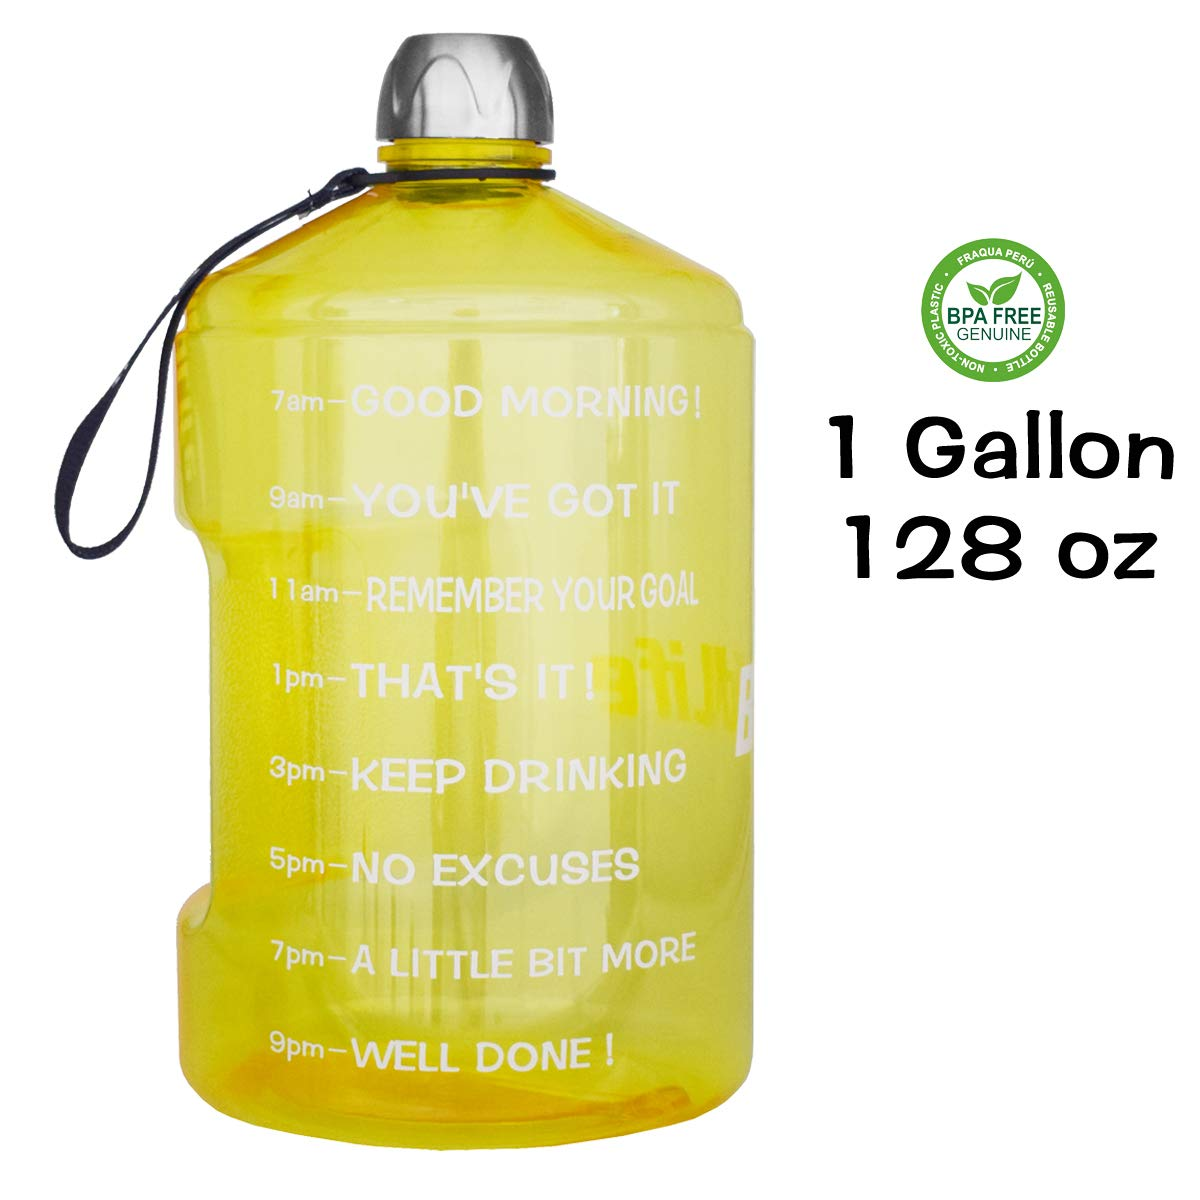 c8c4bd051c0 QuiFit 1 Gallon Water Bottle Reusable Leak-Proof Drinking Water Jug for  Outdoor Camping BPA Free Plastic Sports Water Bottle with Daily Time Marked  ...